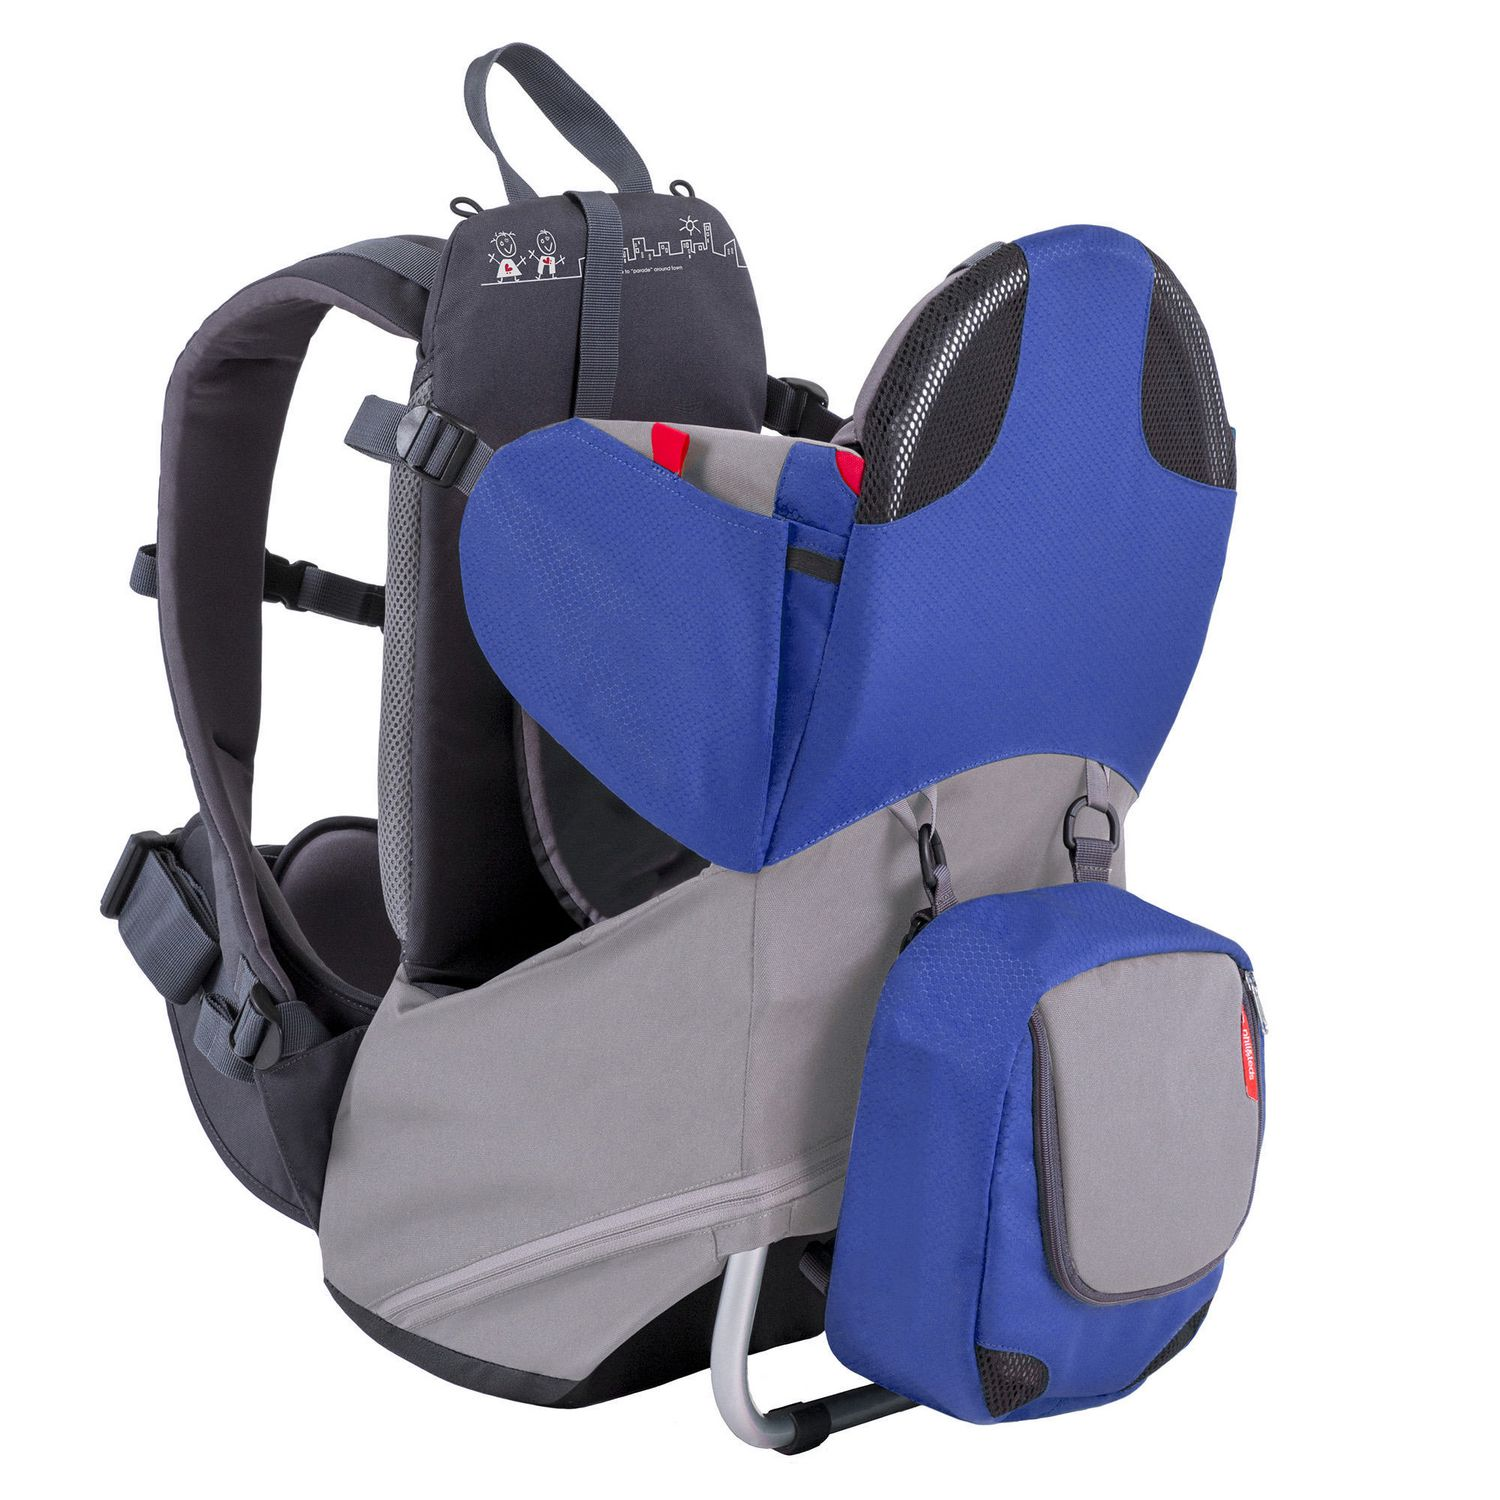 phil&teds Parade Backpack Carrier